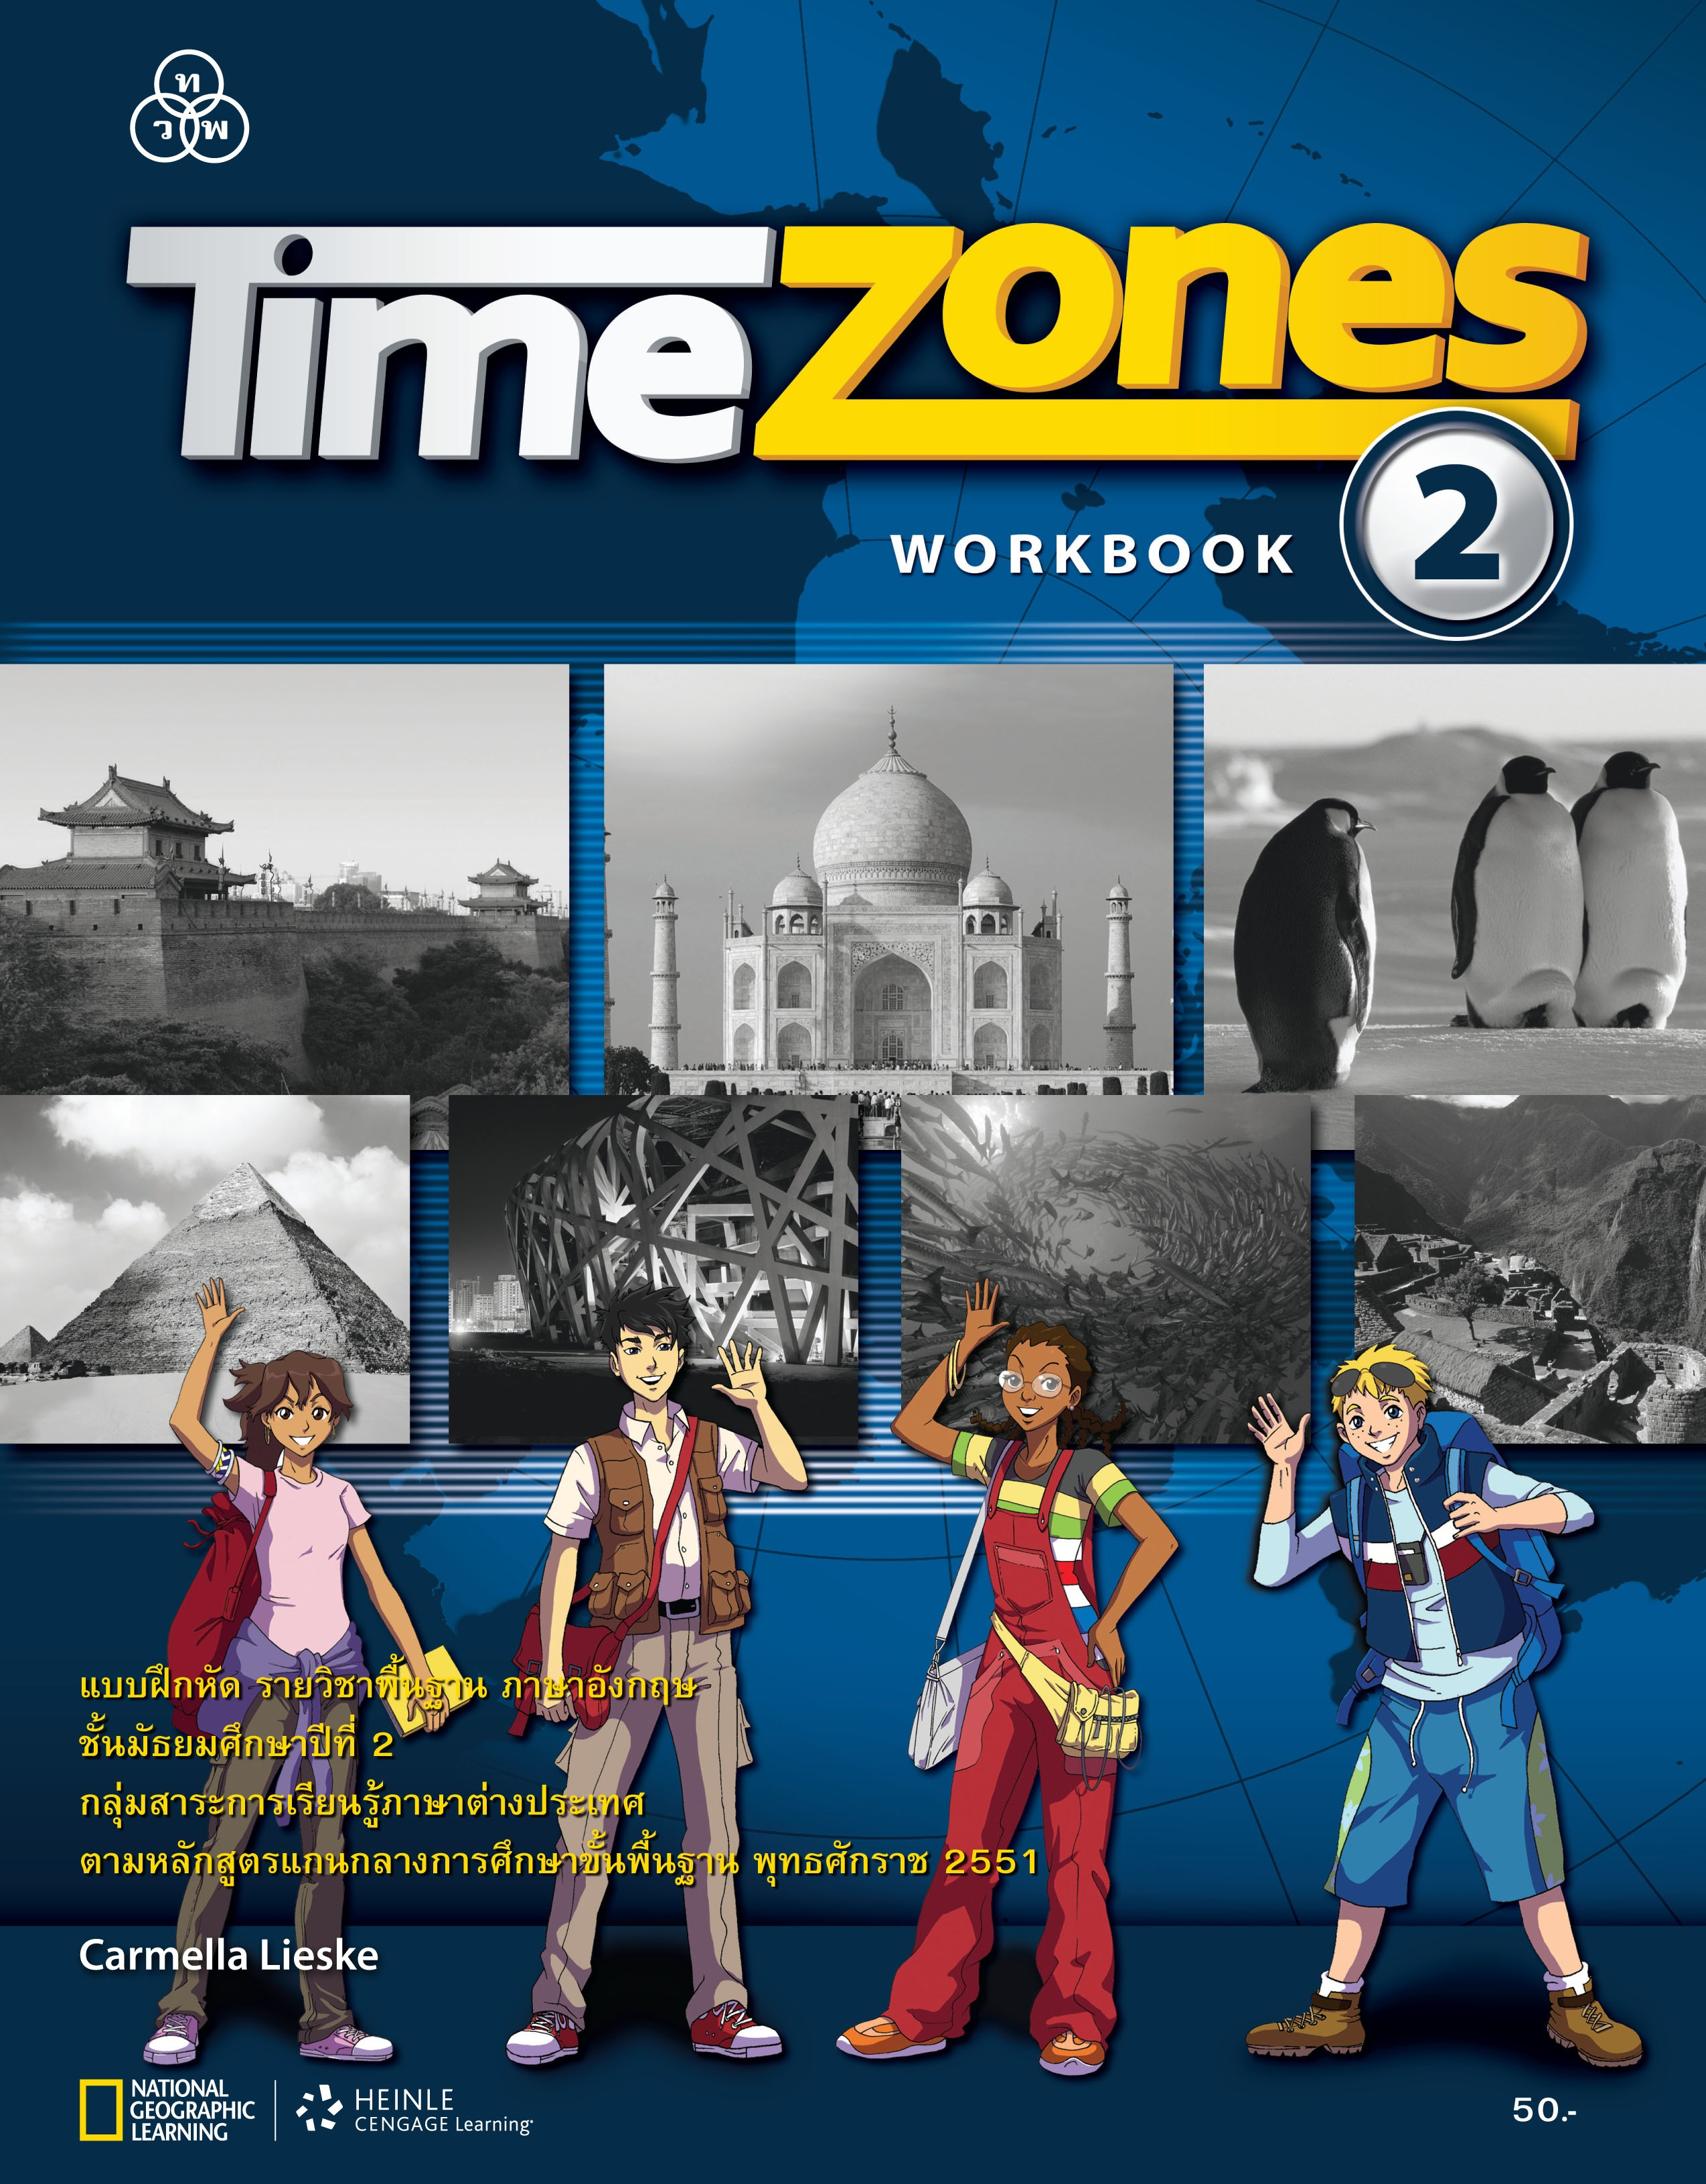 TimeZones Workbook 2